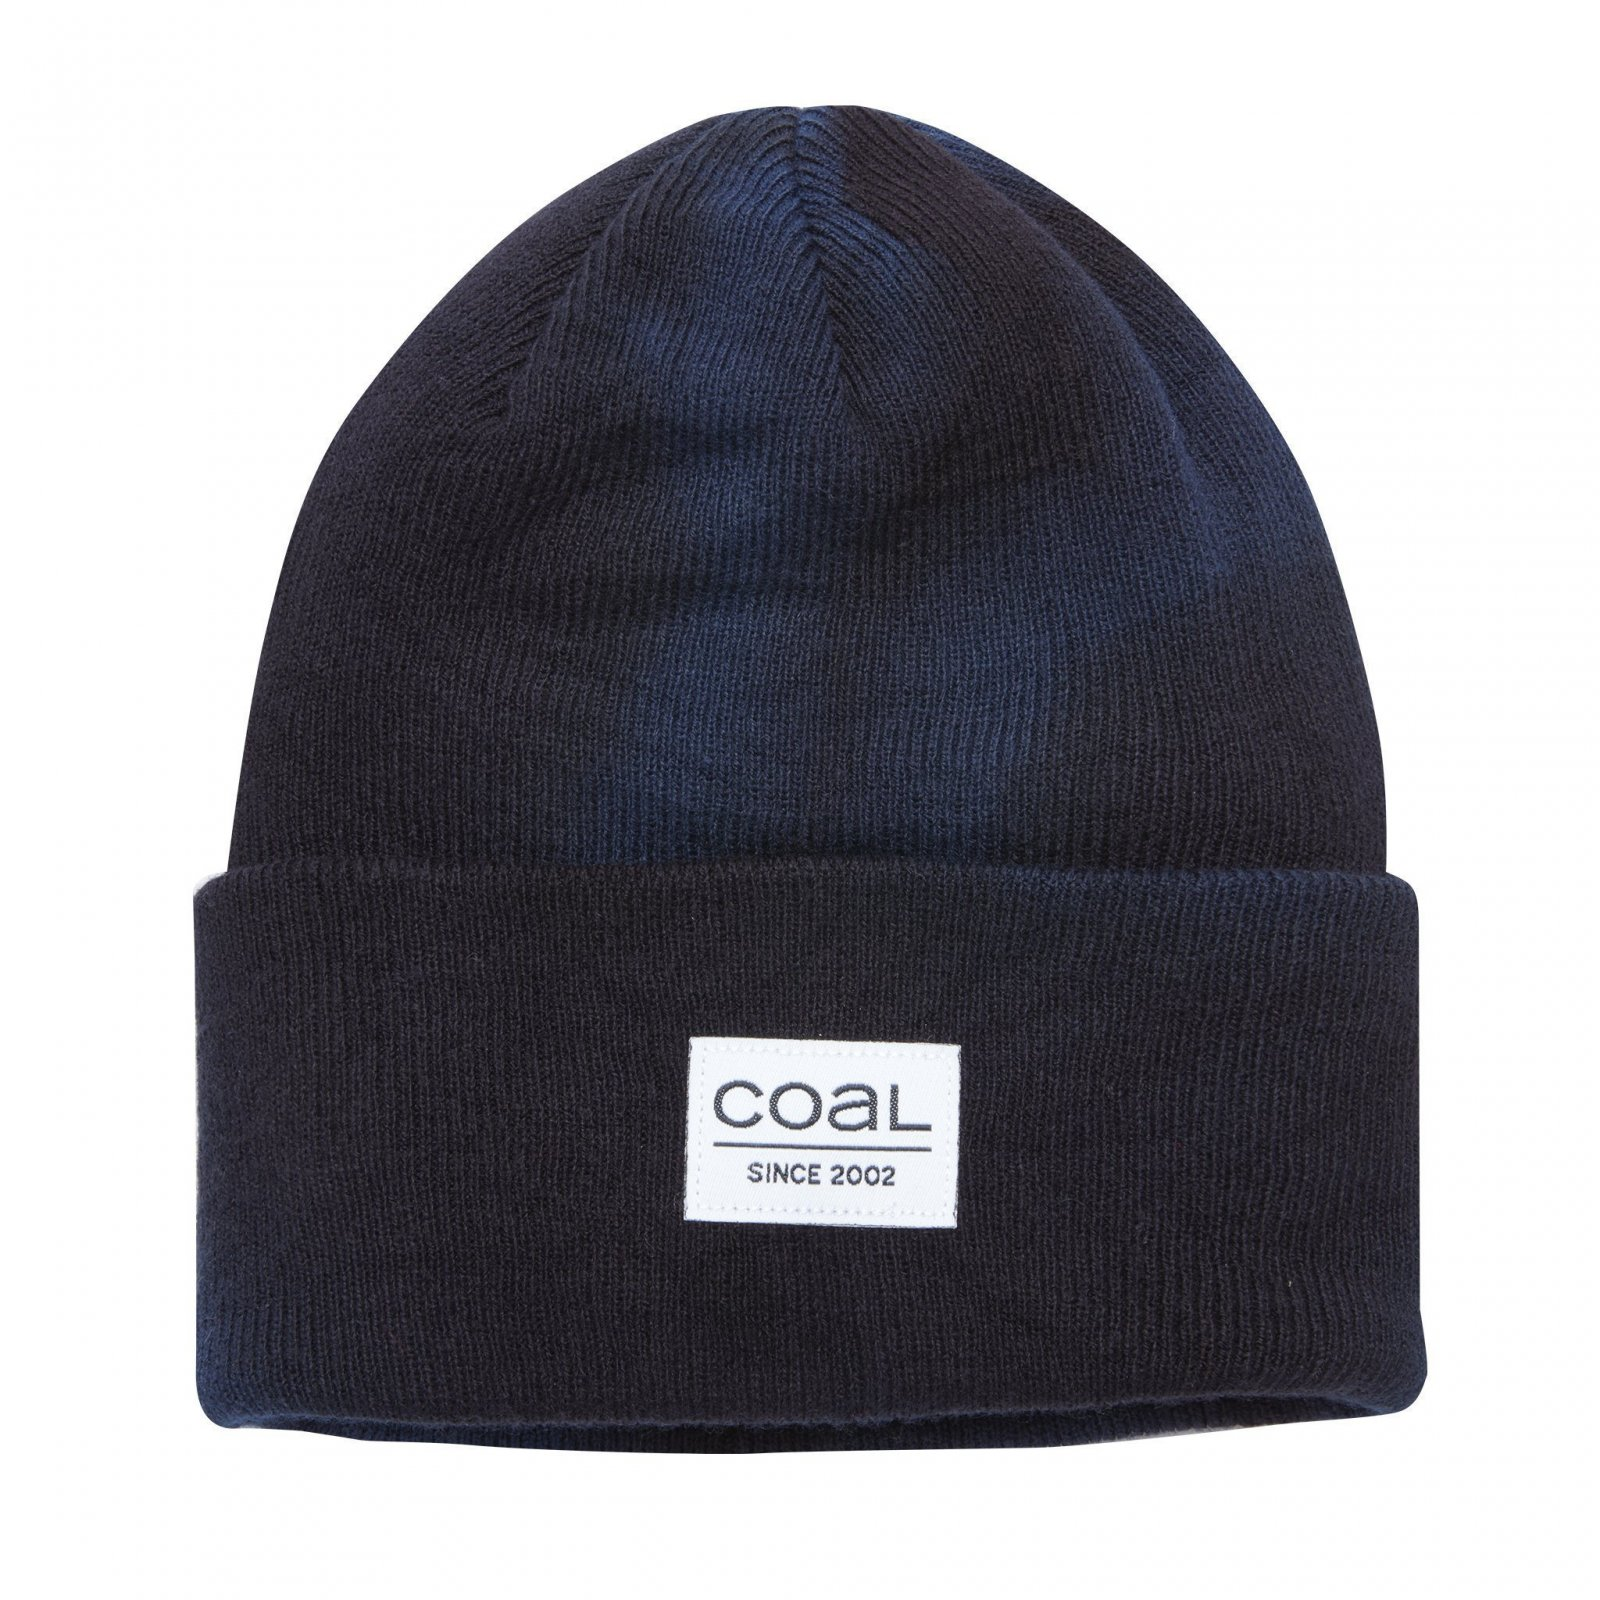 Coal The Standard Acrylic Knit Cuffed Beanie